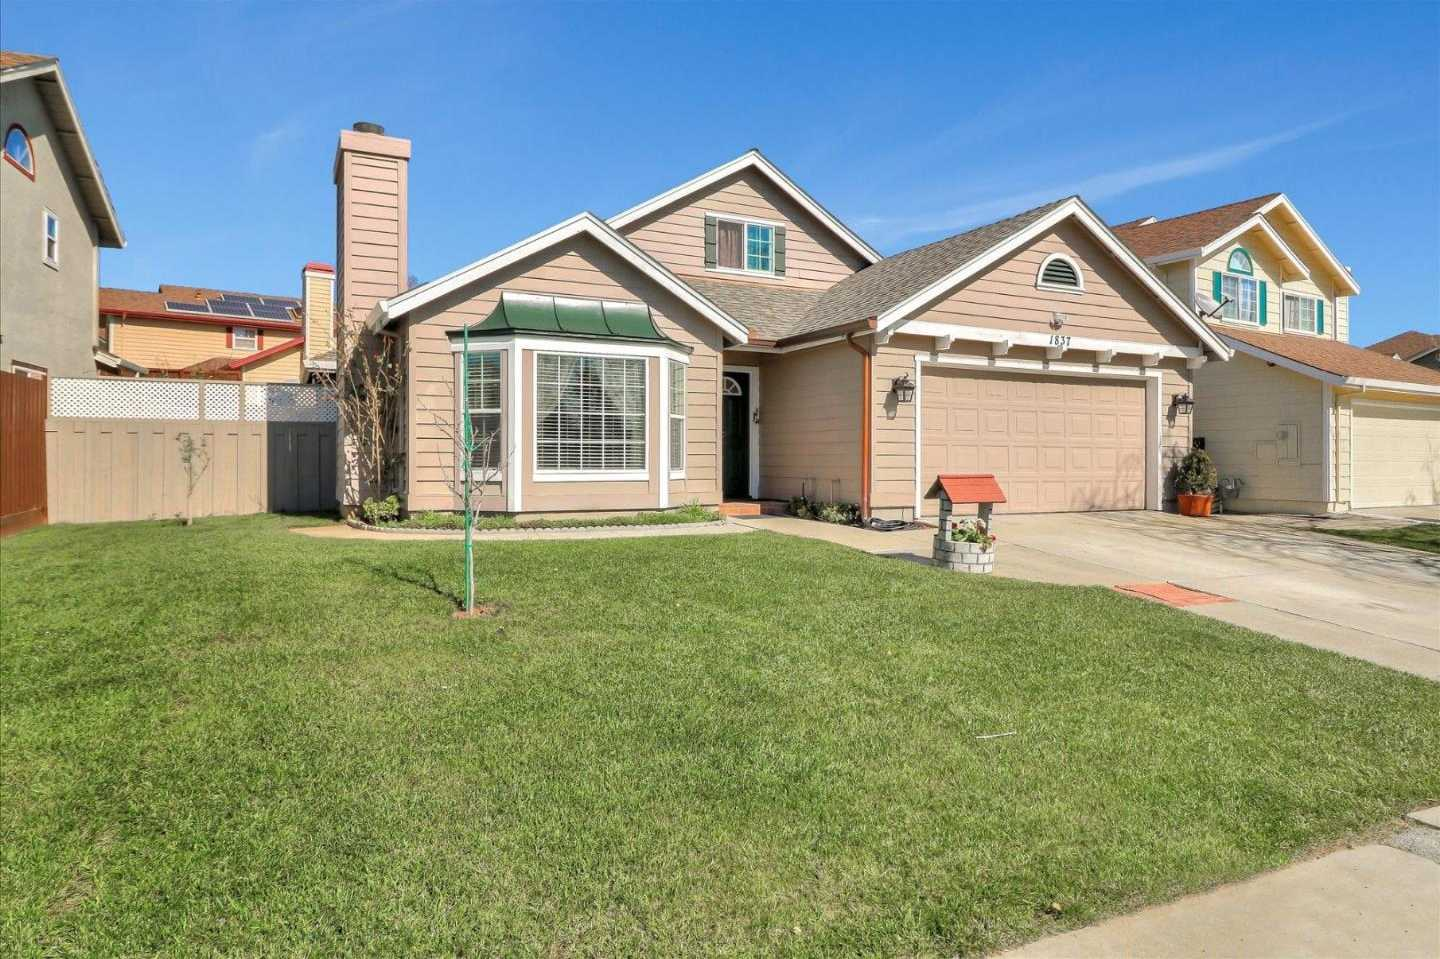 $499,000 - 3Br/2Ba -  for Sale in Salinas